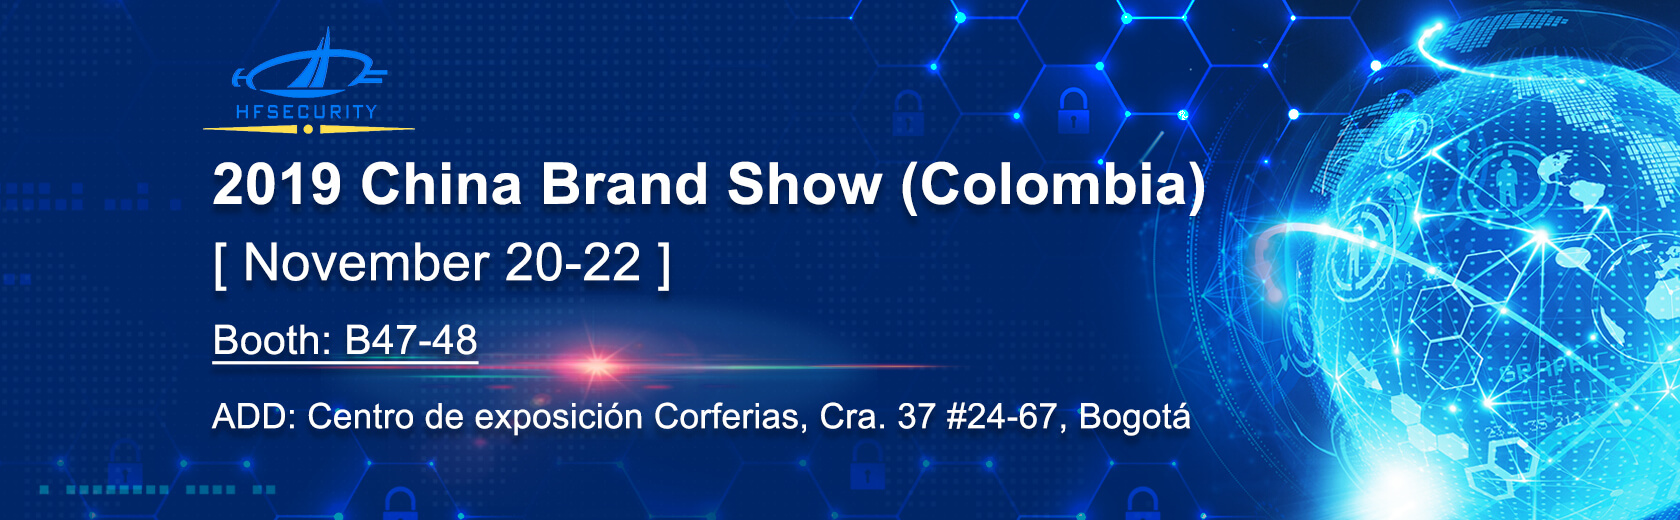 2019 China Brand Show Colombia